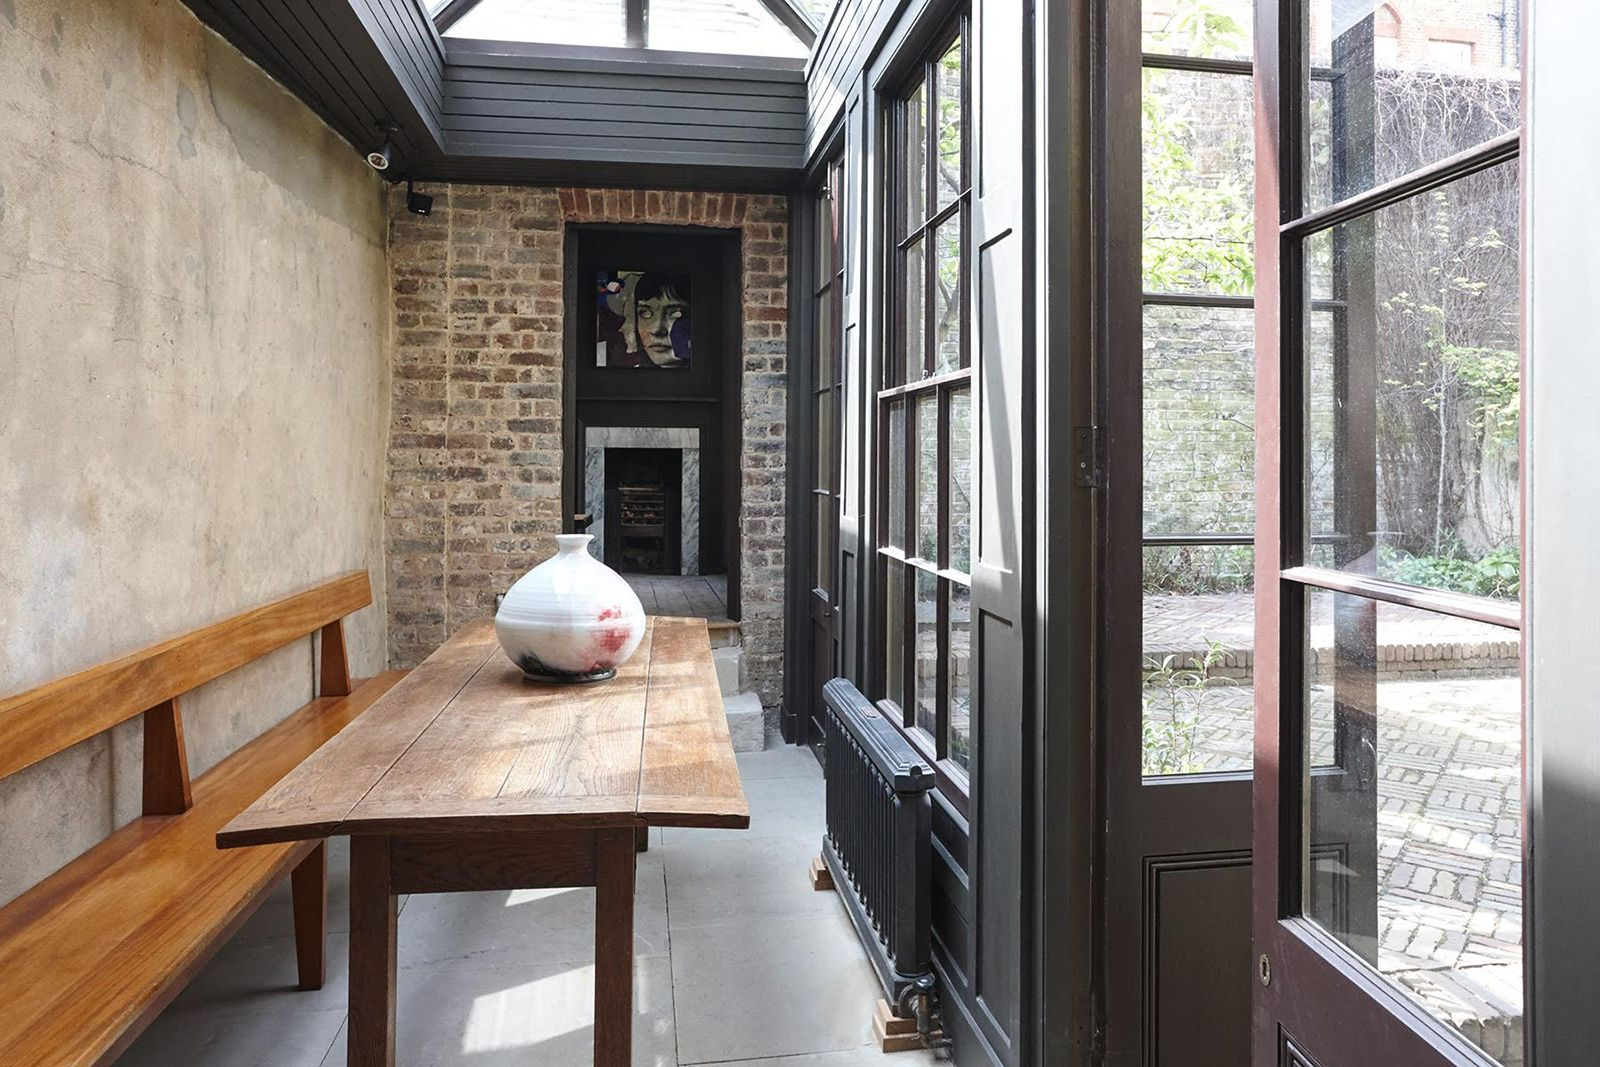 10 of the best London apartments for rent | London house ...